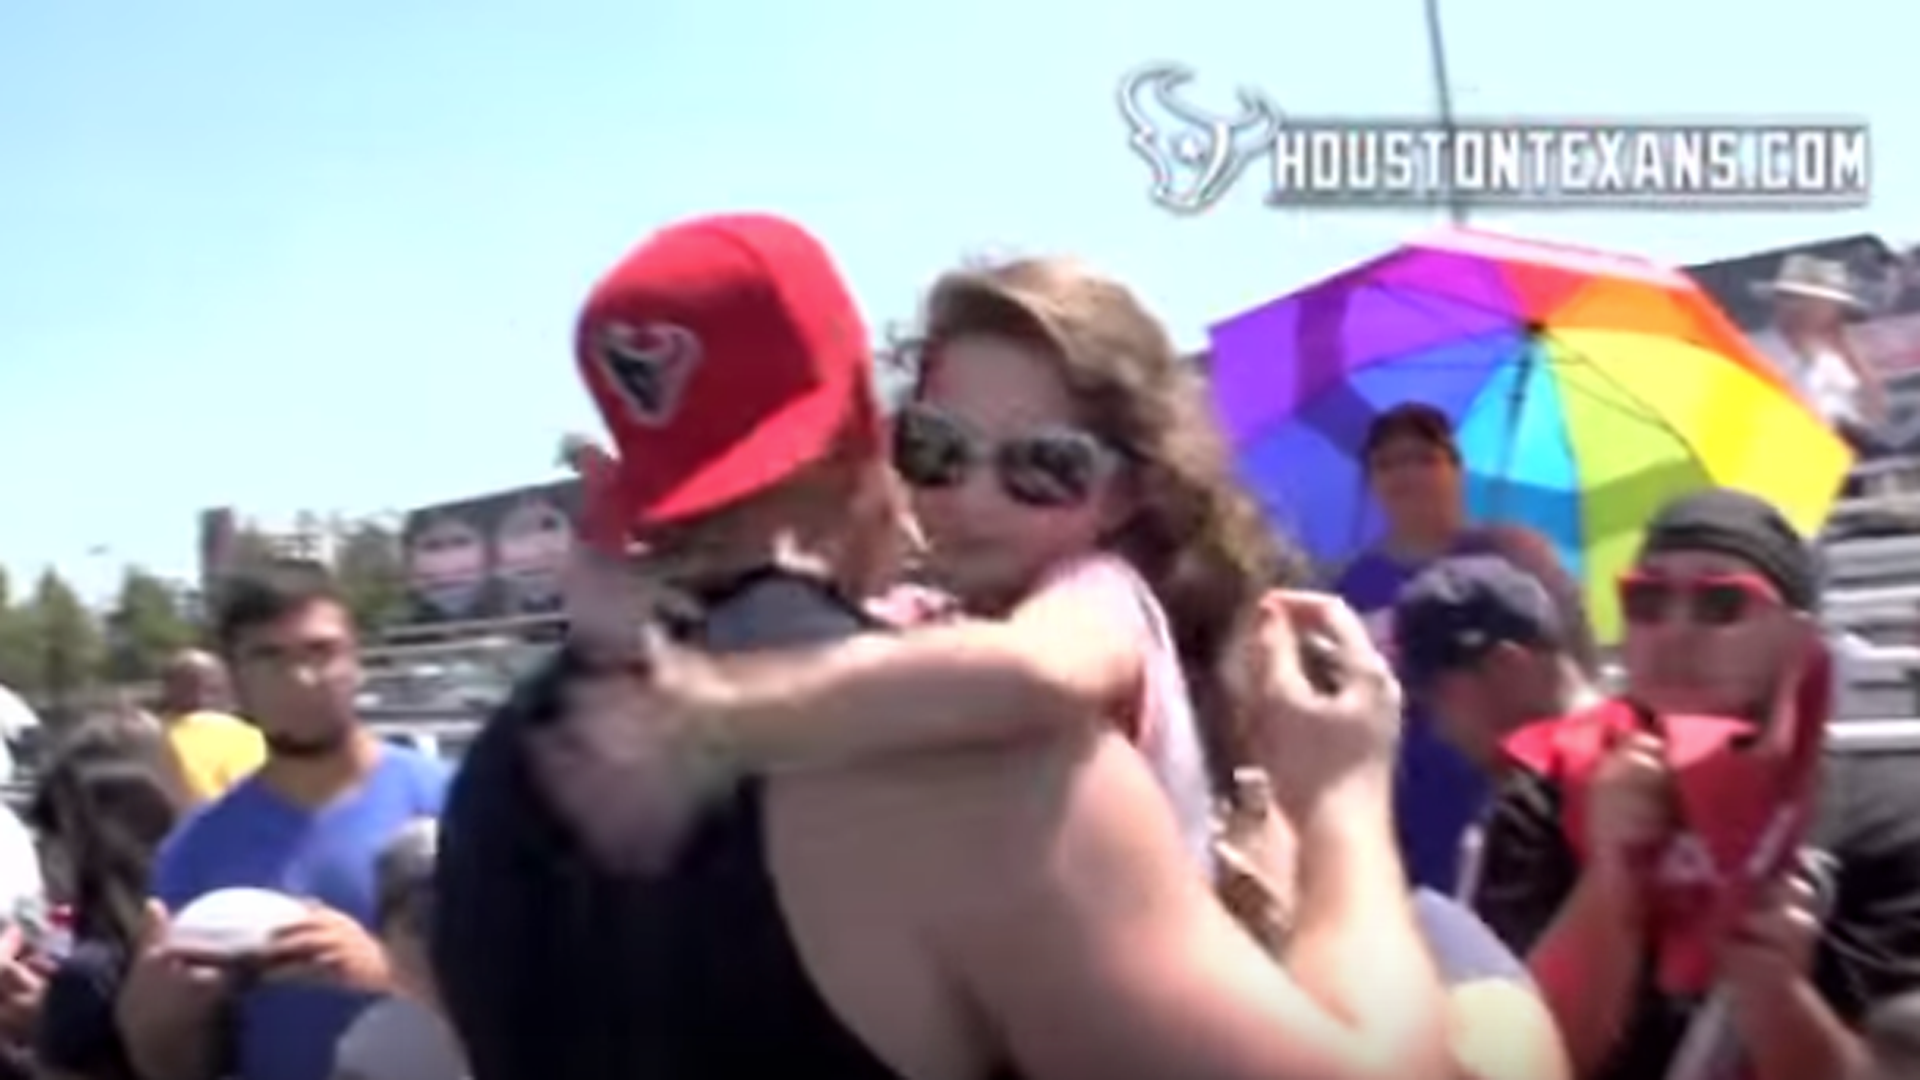 Adorable young Texans' fan hugs, kisses J.J. Watt